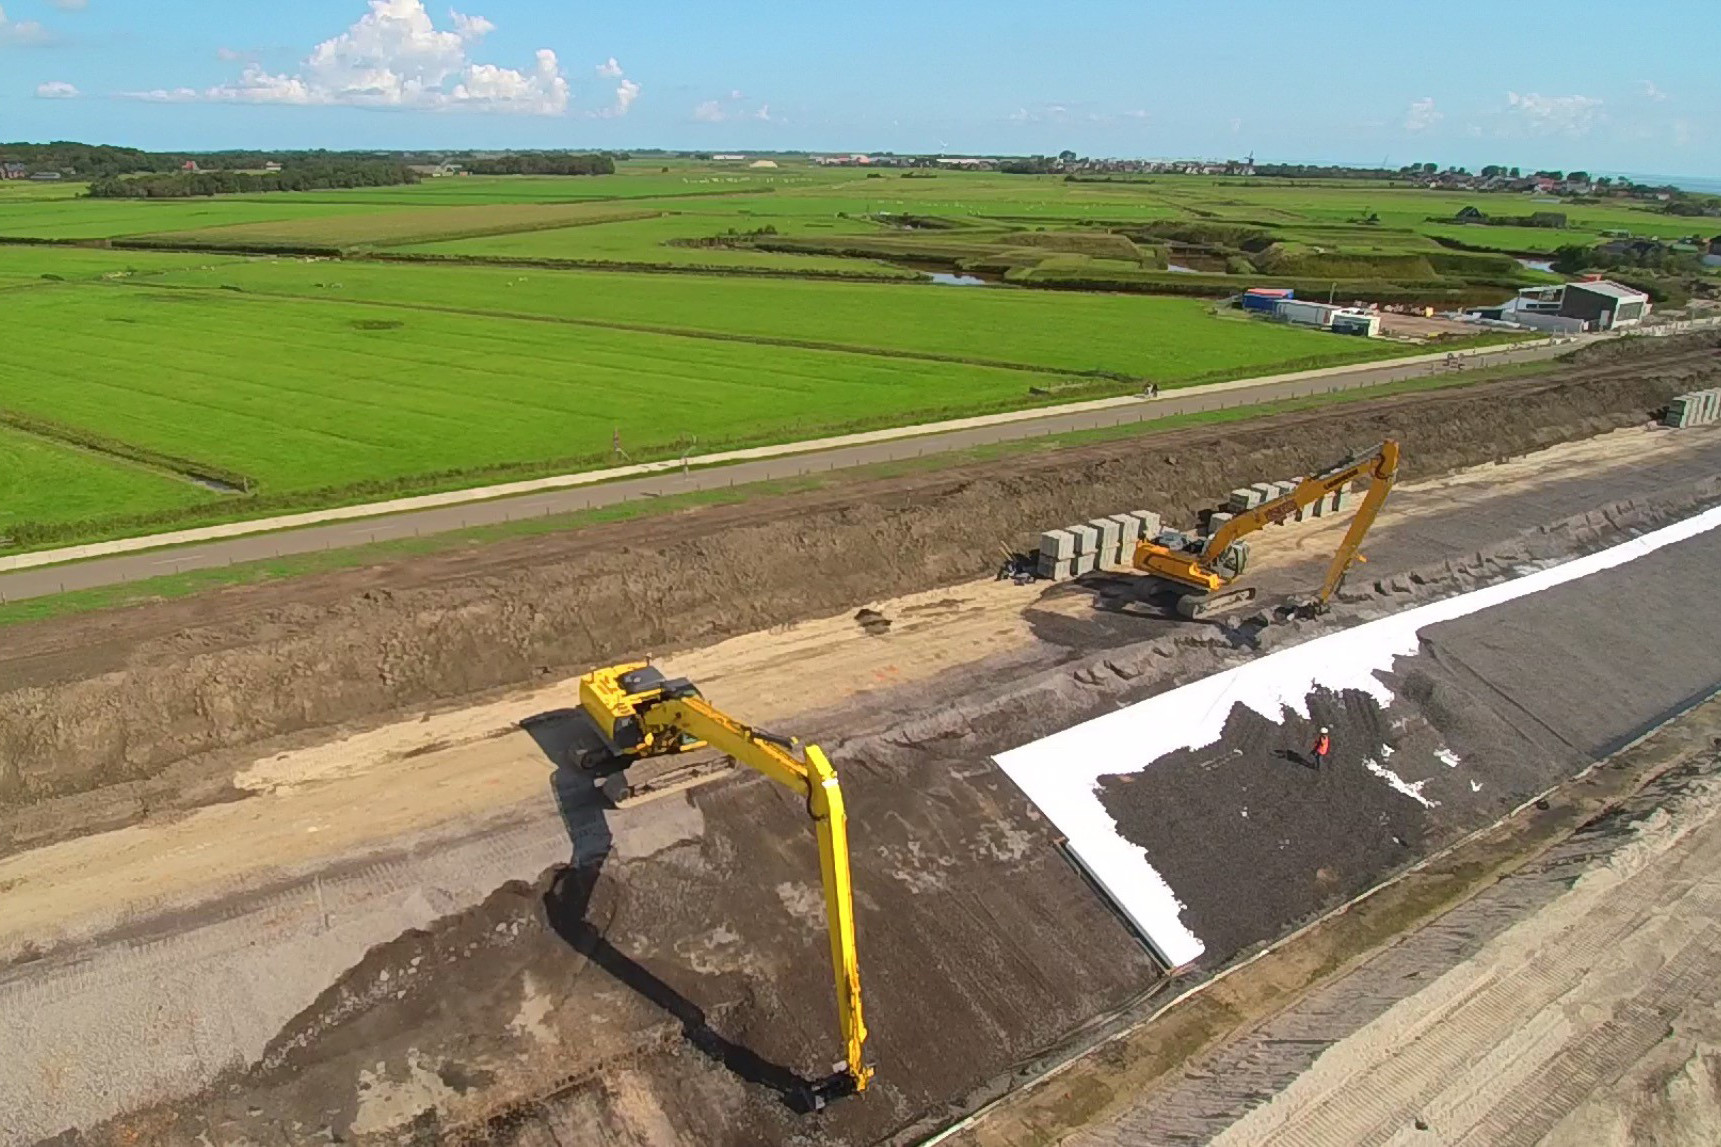 Dike upgrade activities on the island of Texel